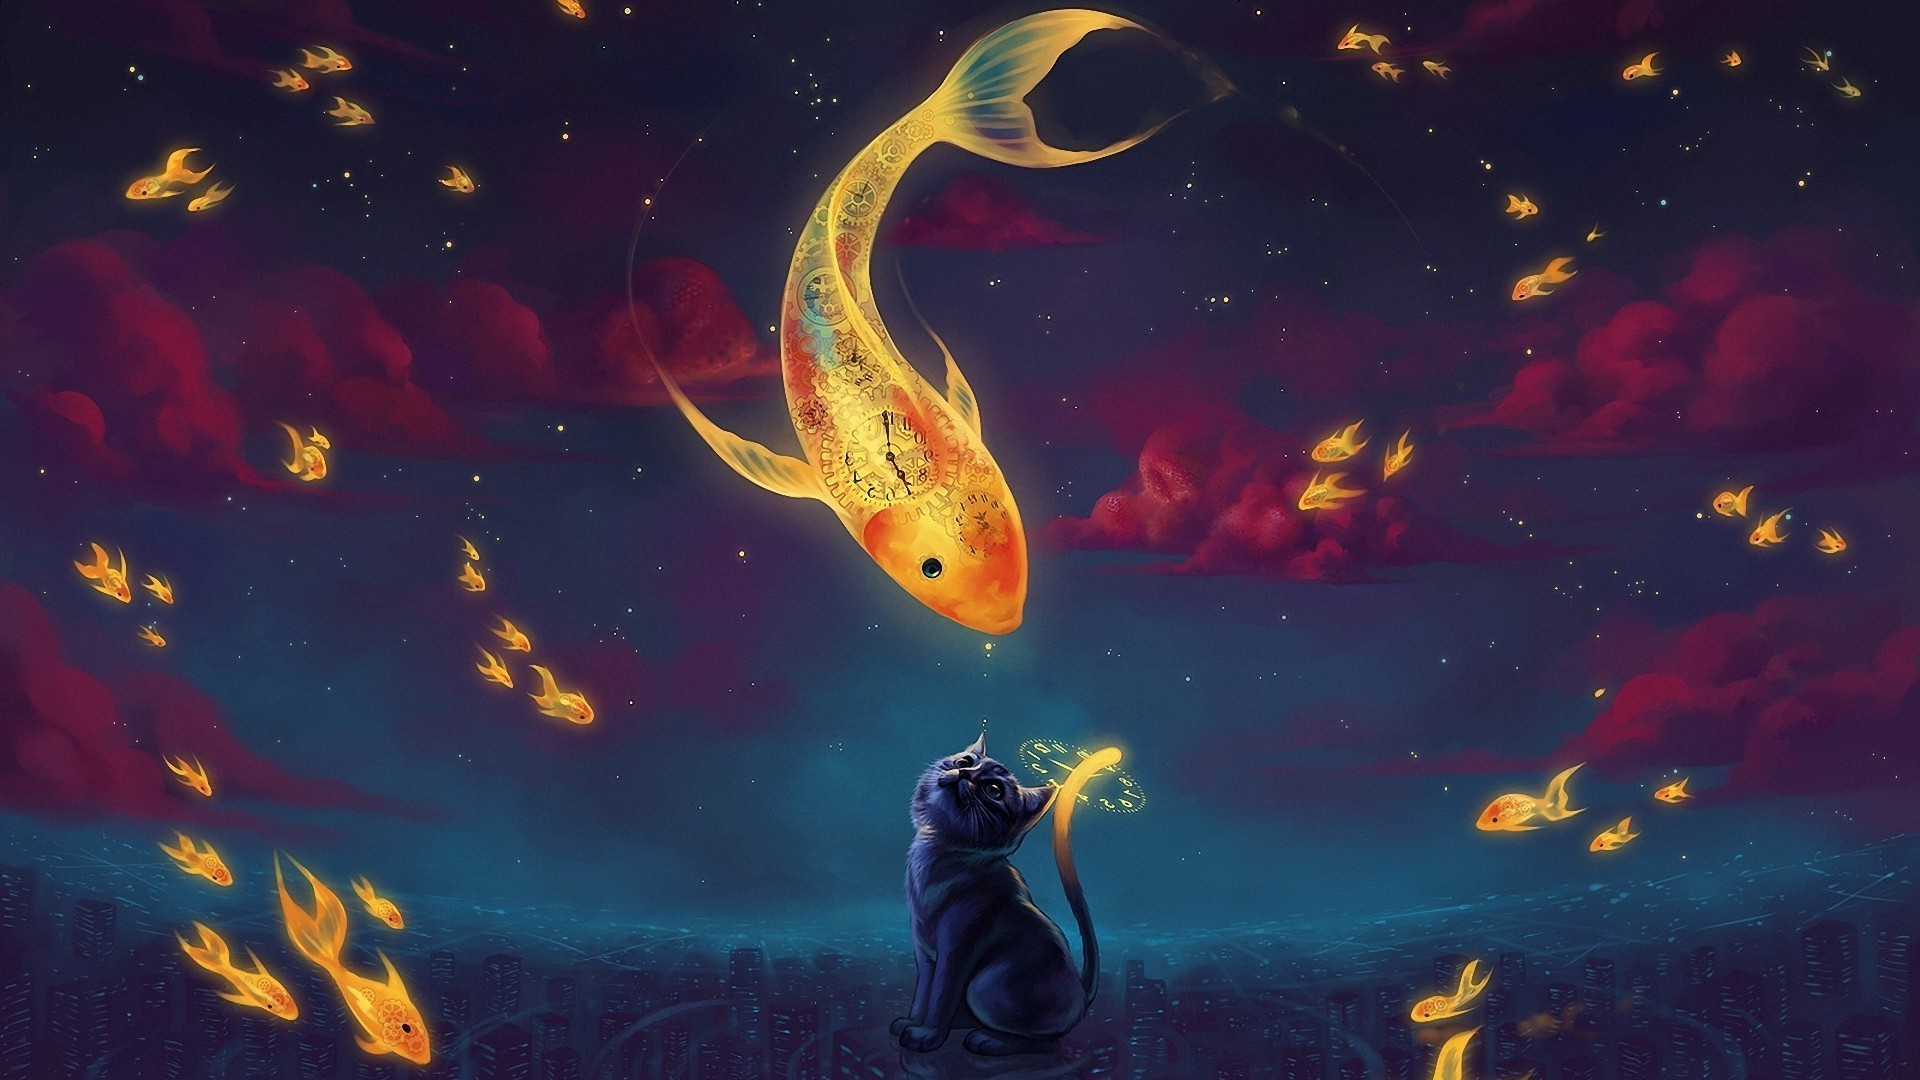 Surreal art wallpaper 65 images for Moving fish for cats